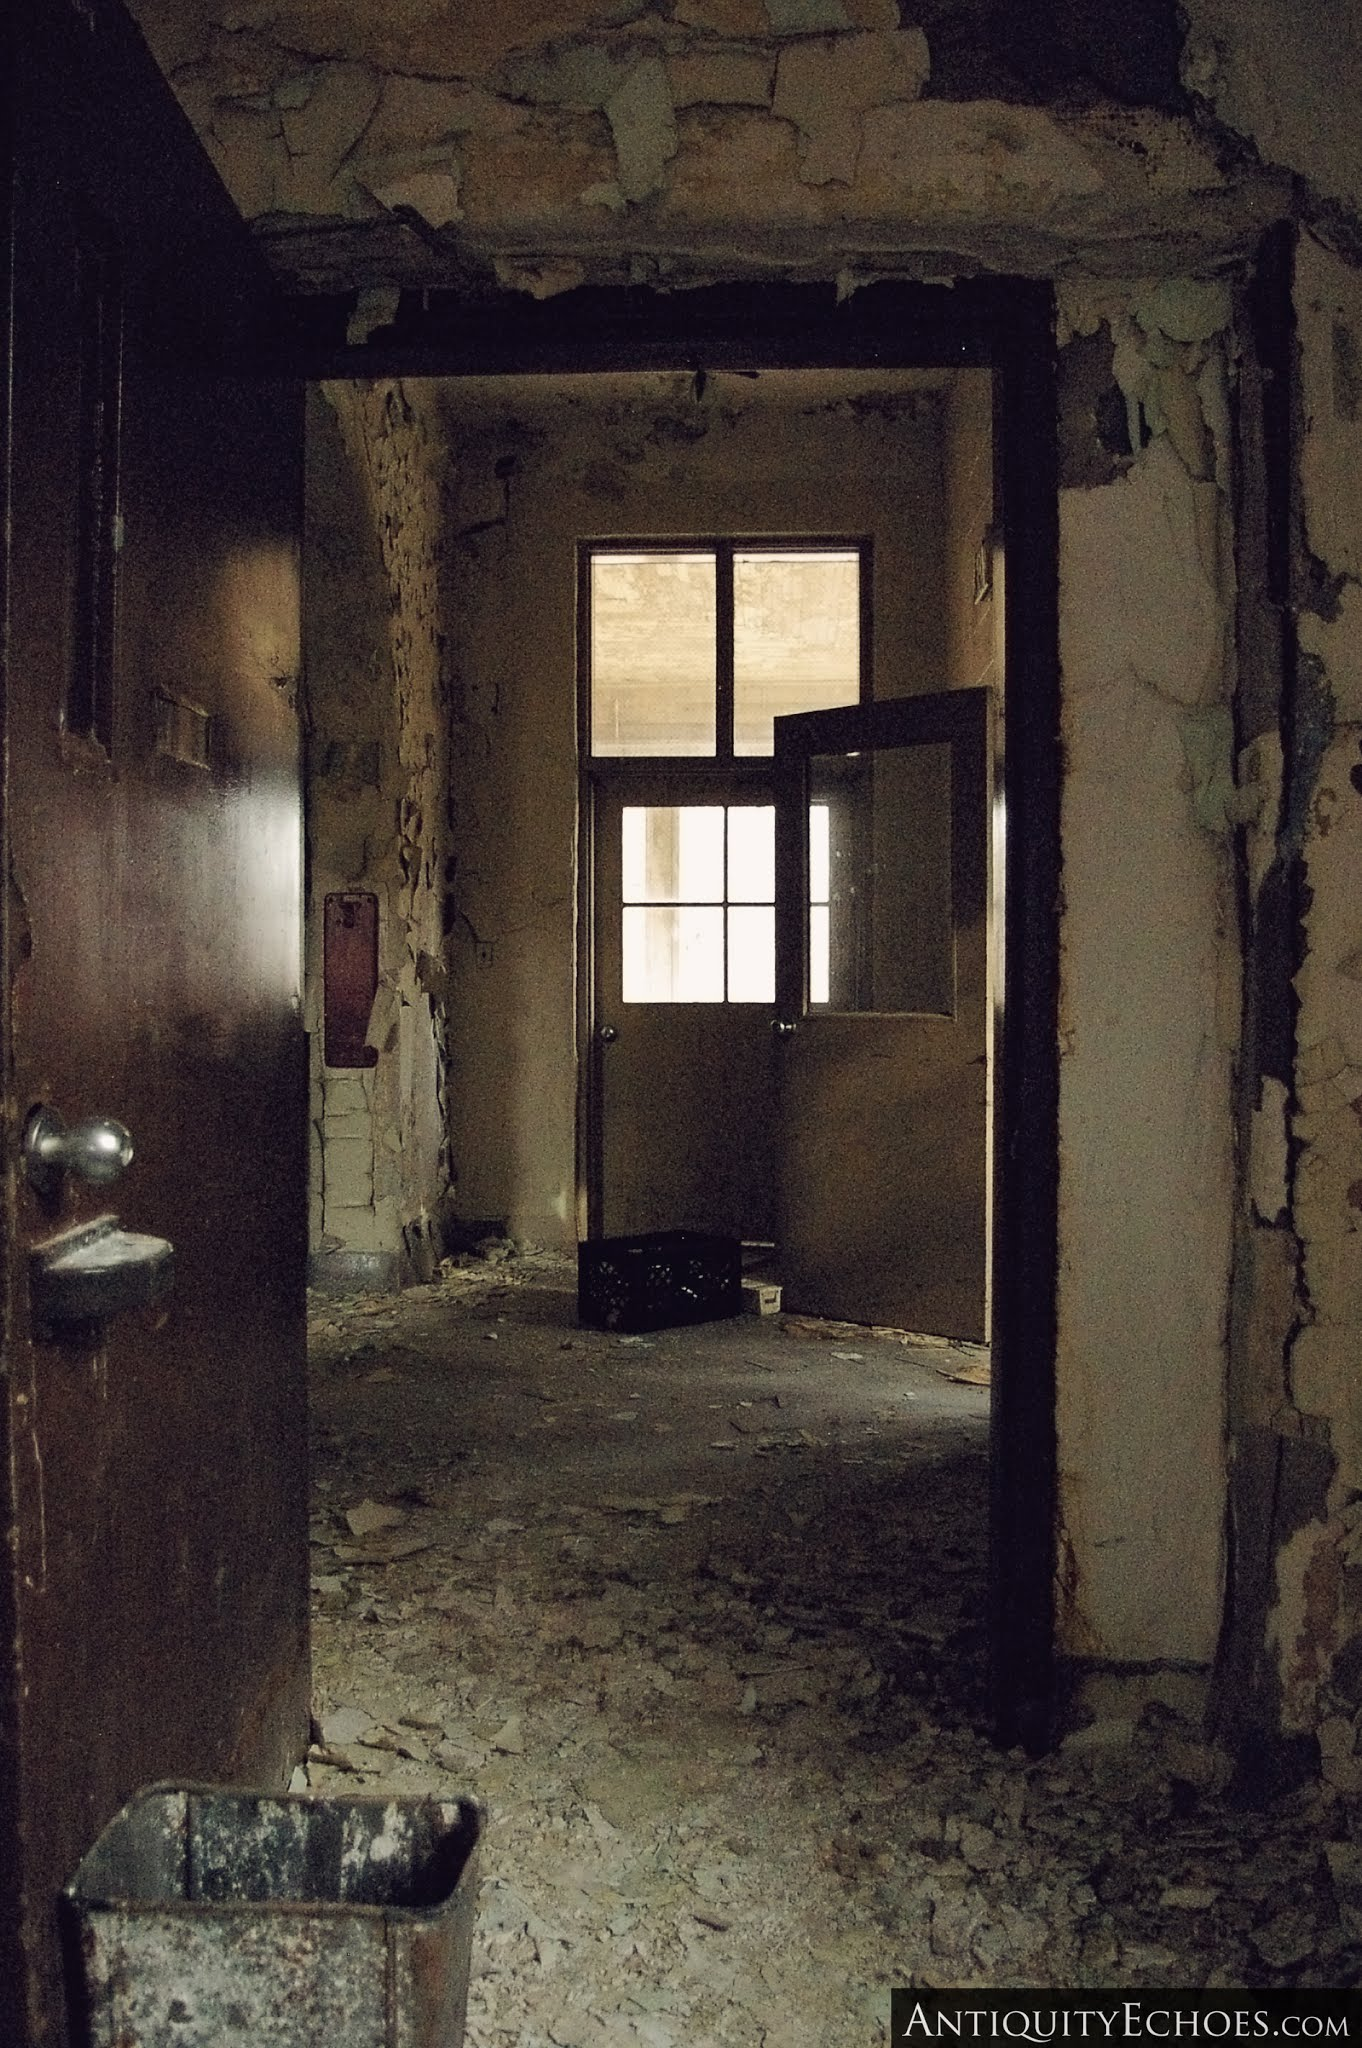 Overbrook Asylum - Endless Doorways